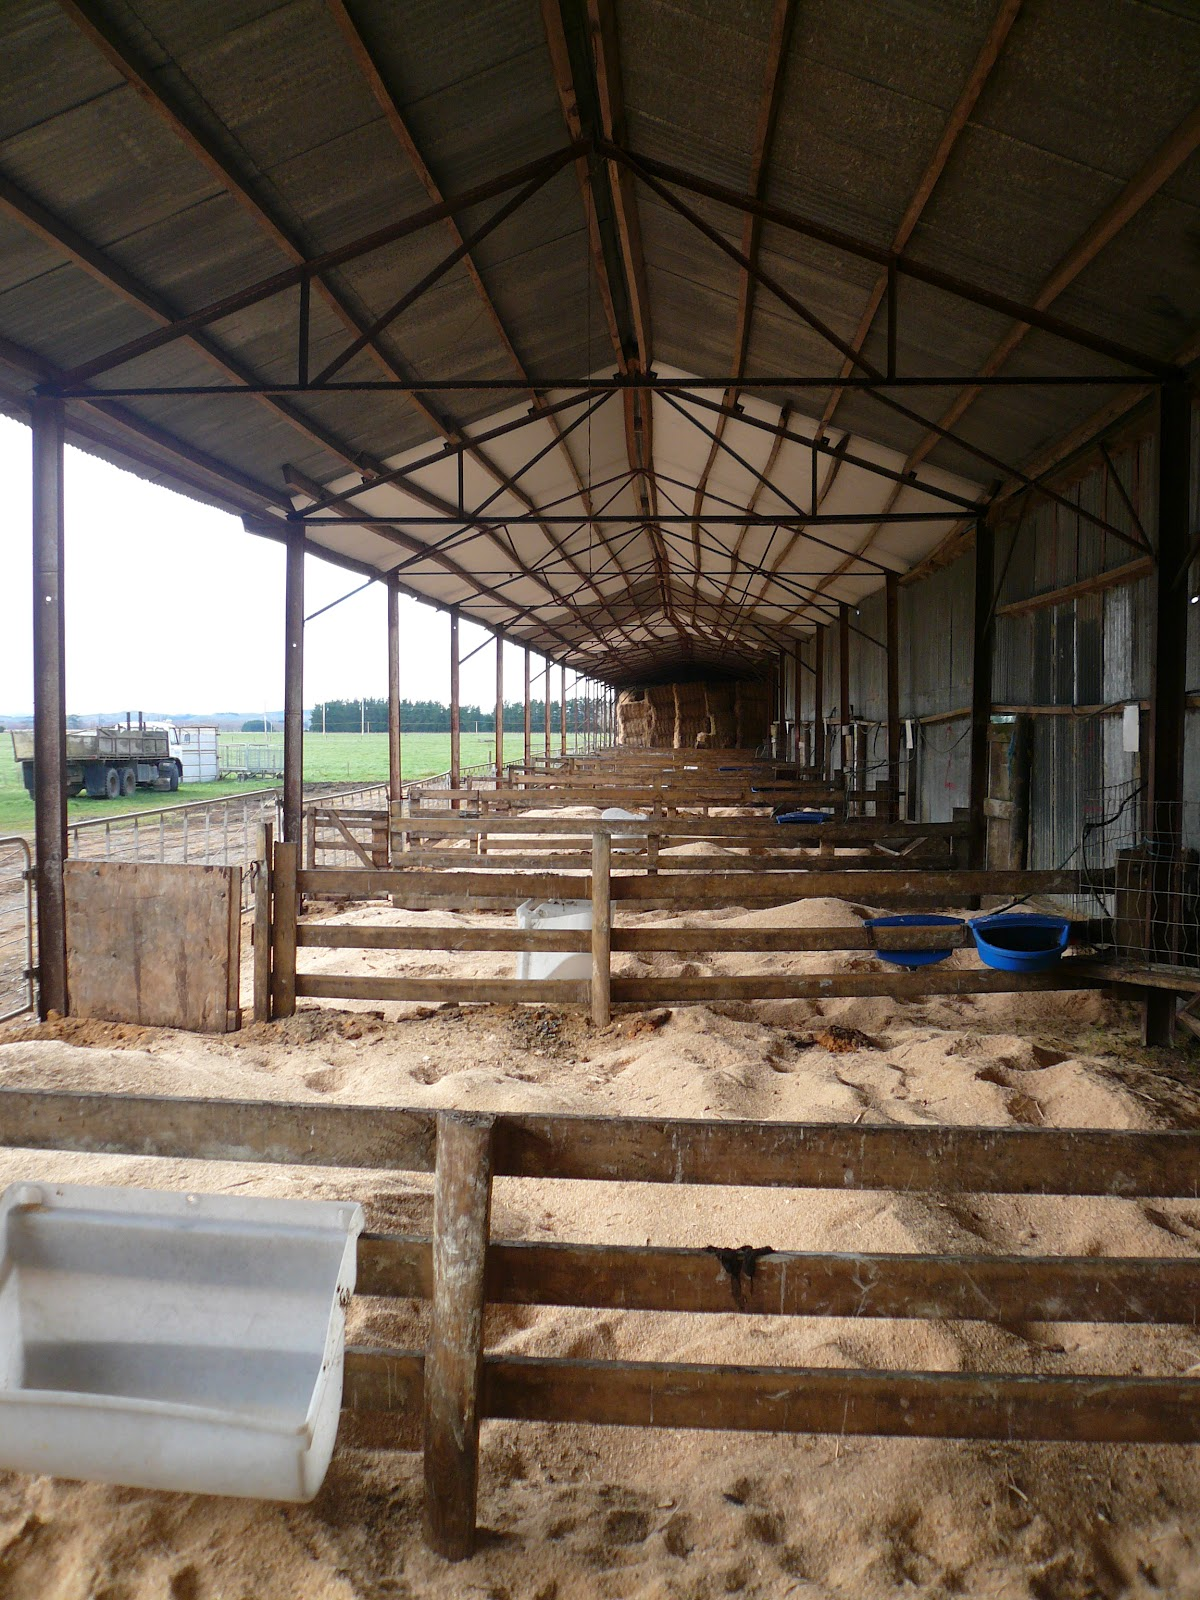 How To Move A Shed >> BEL Group Dairy Farms Internship - New Zealand 2012: The calves are coming...THE CALVES ARE ...